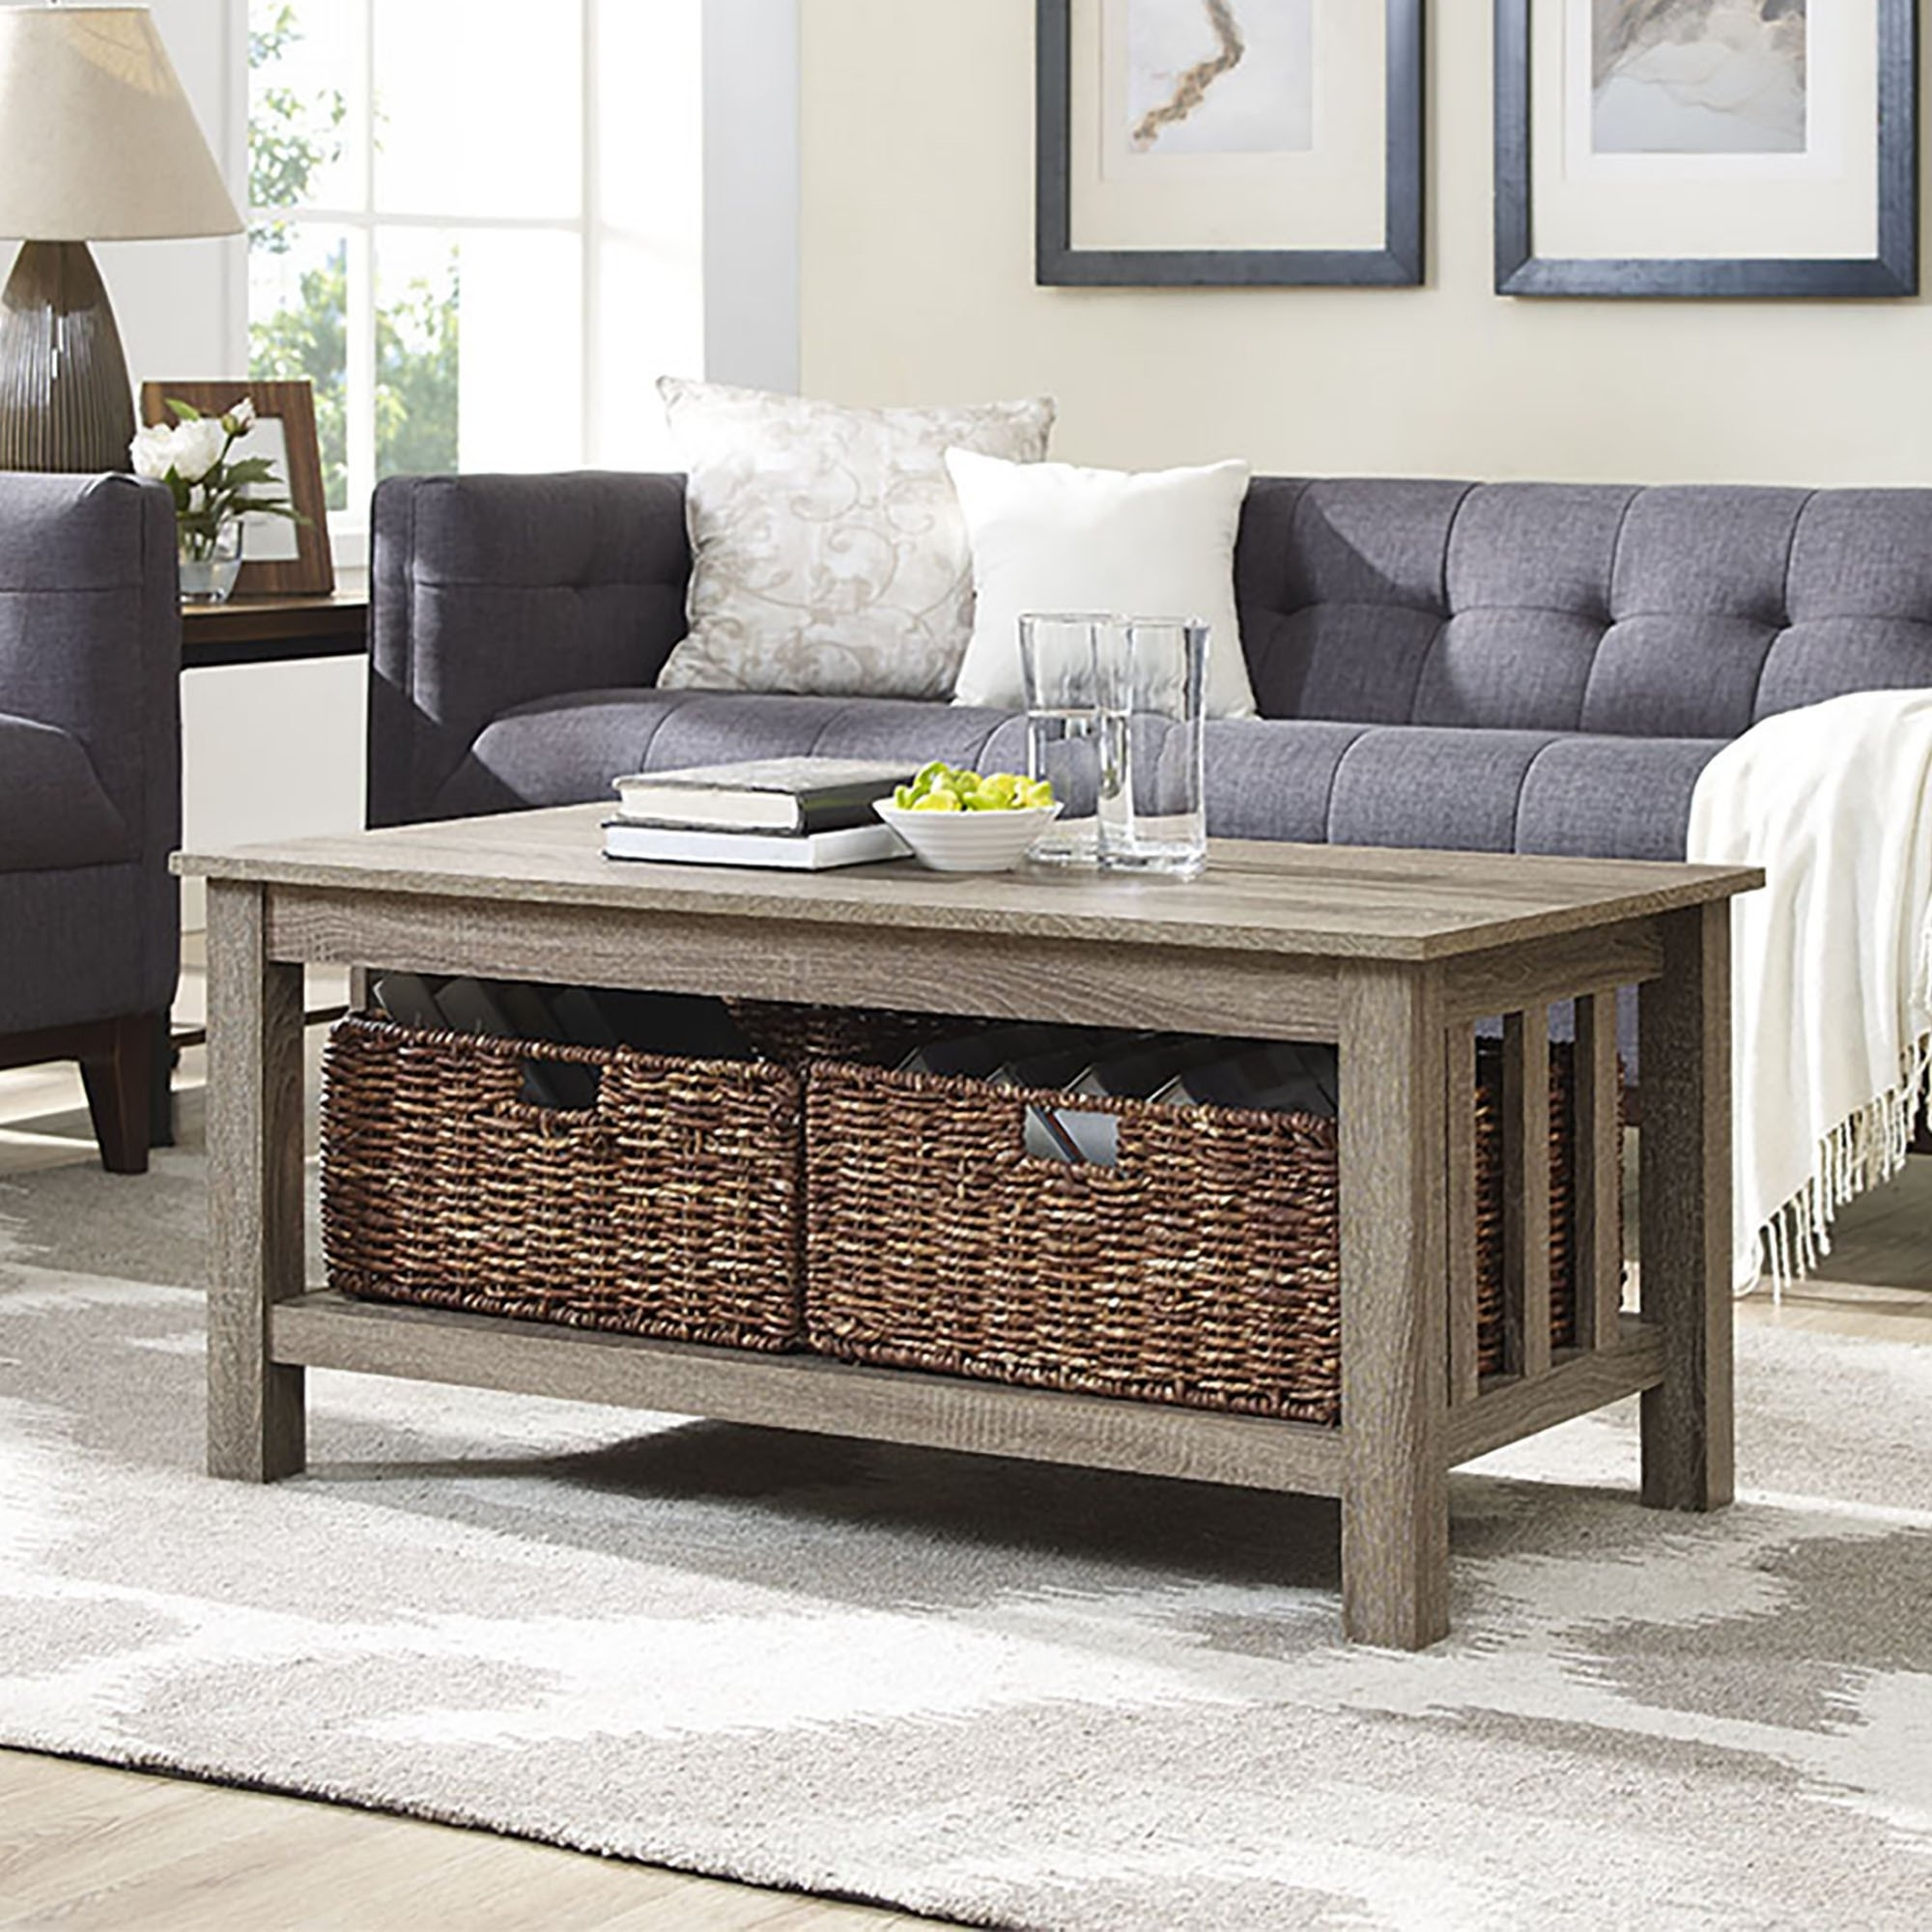 Well Known Lassen Square Lift Top Cocktail Tables Inside Shop 40 Inch Driftwood Coffee Table With Storage Totes – On Sale (View 8 of 20)